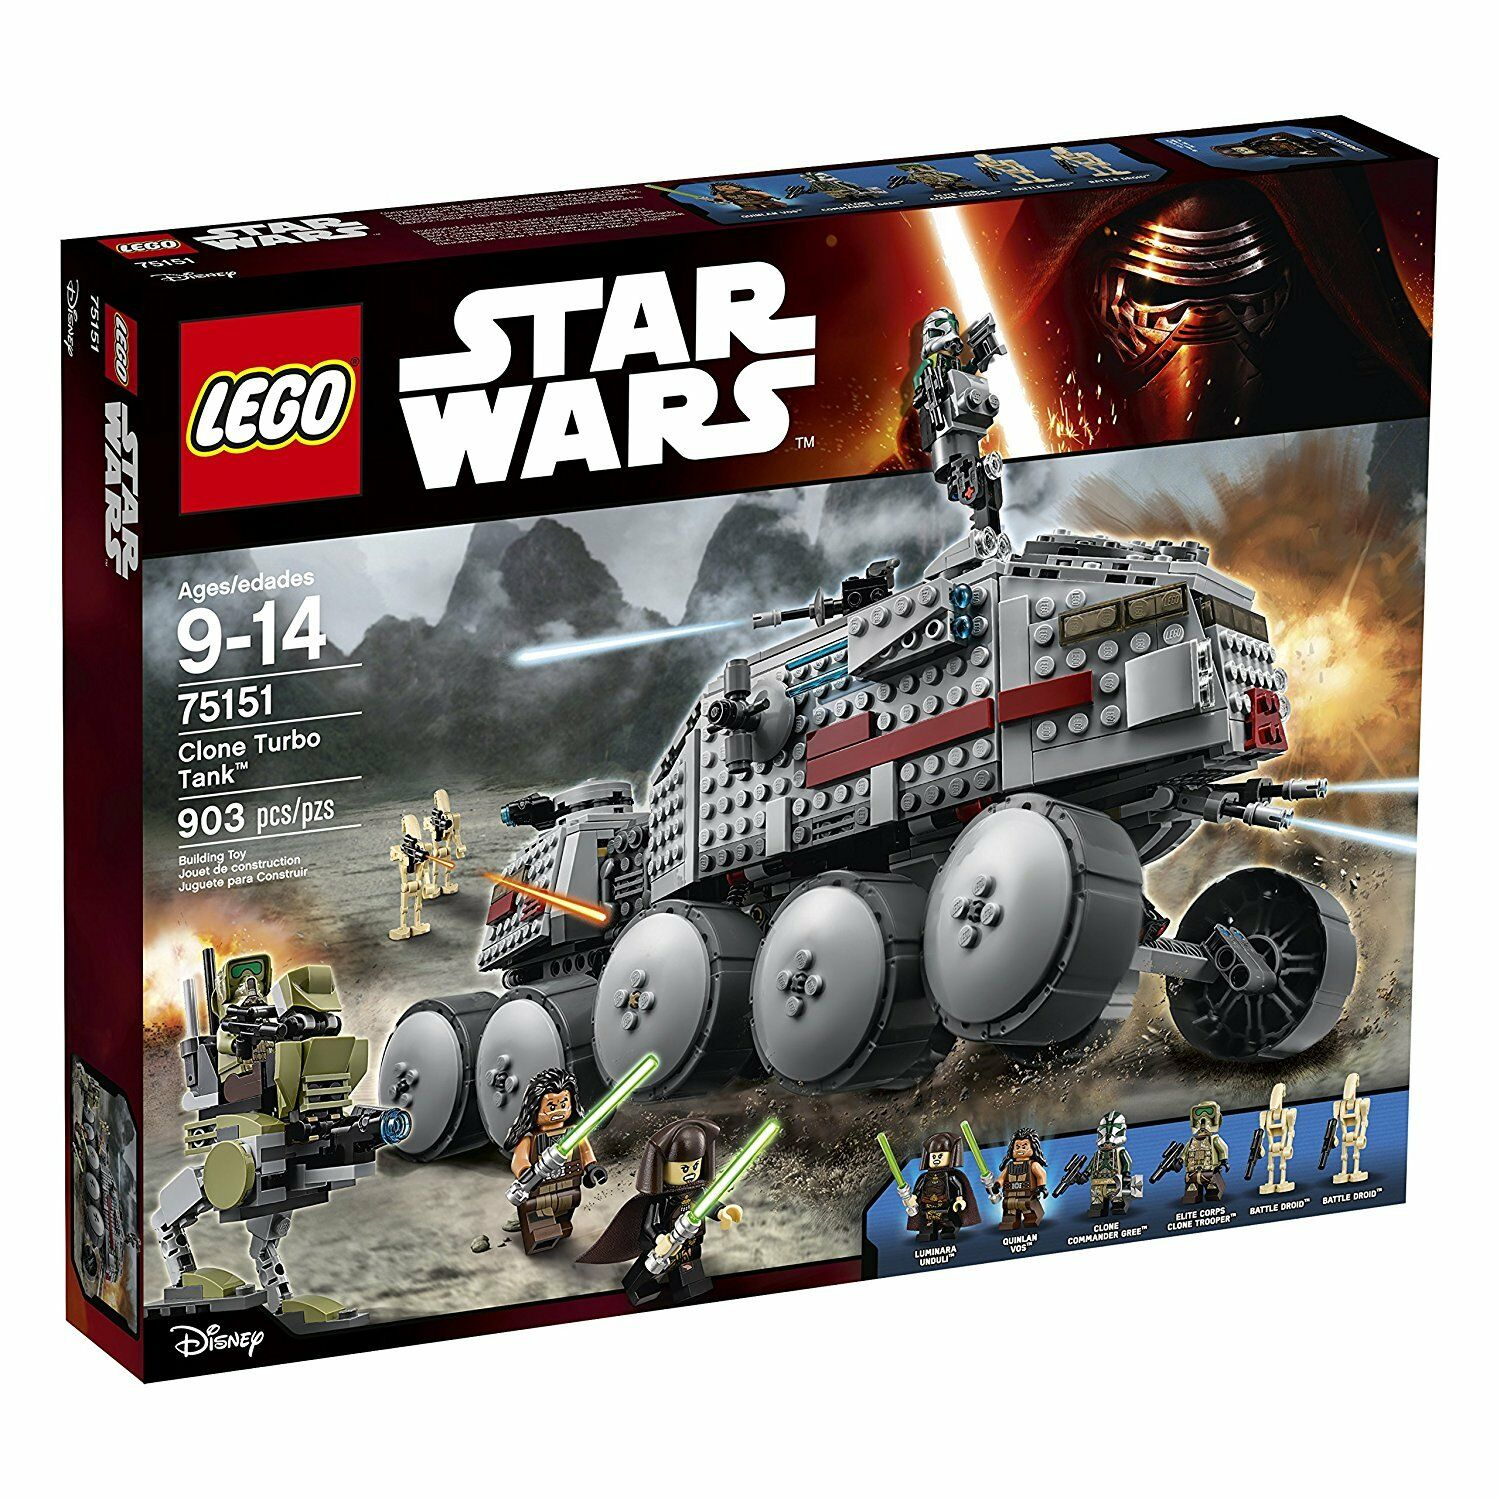 LEGO Star Wars Clone Turbo Tank 75151 - retired retired retired ac713e